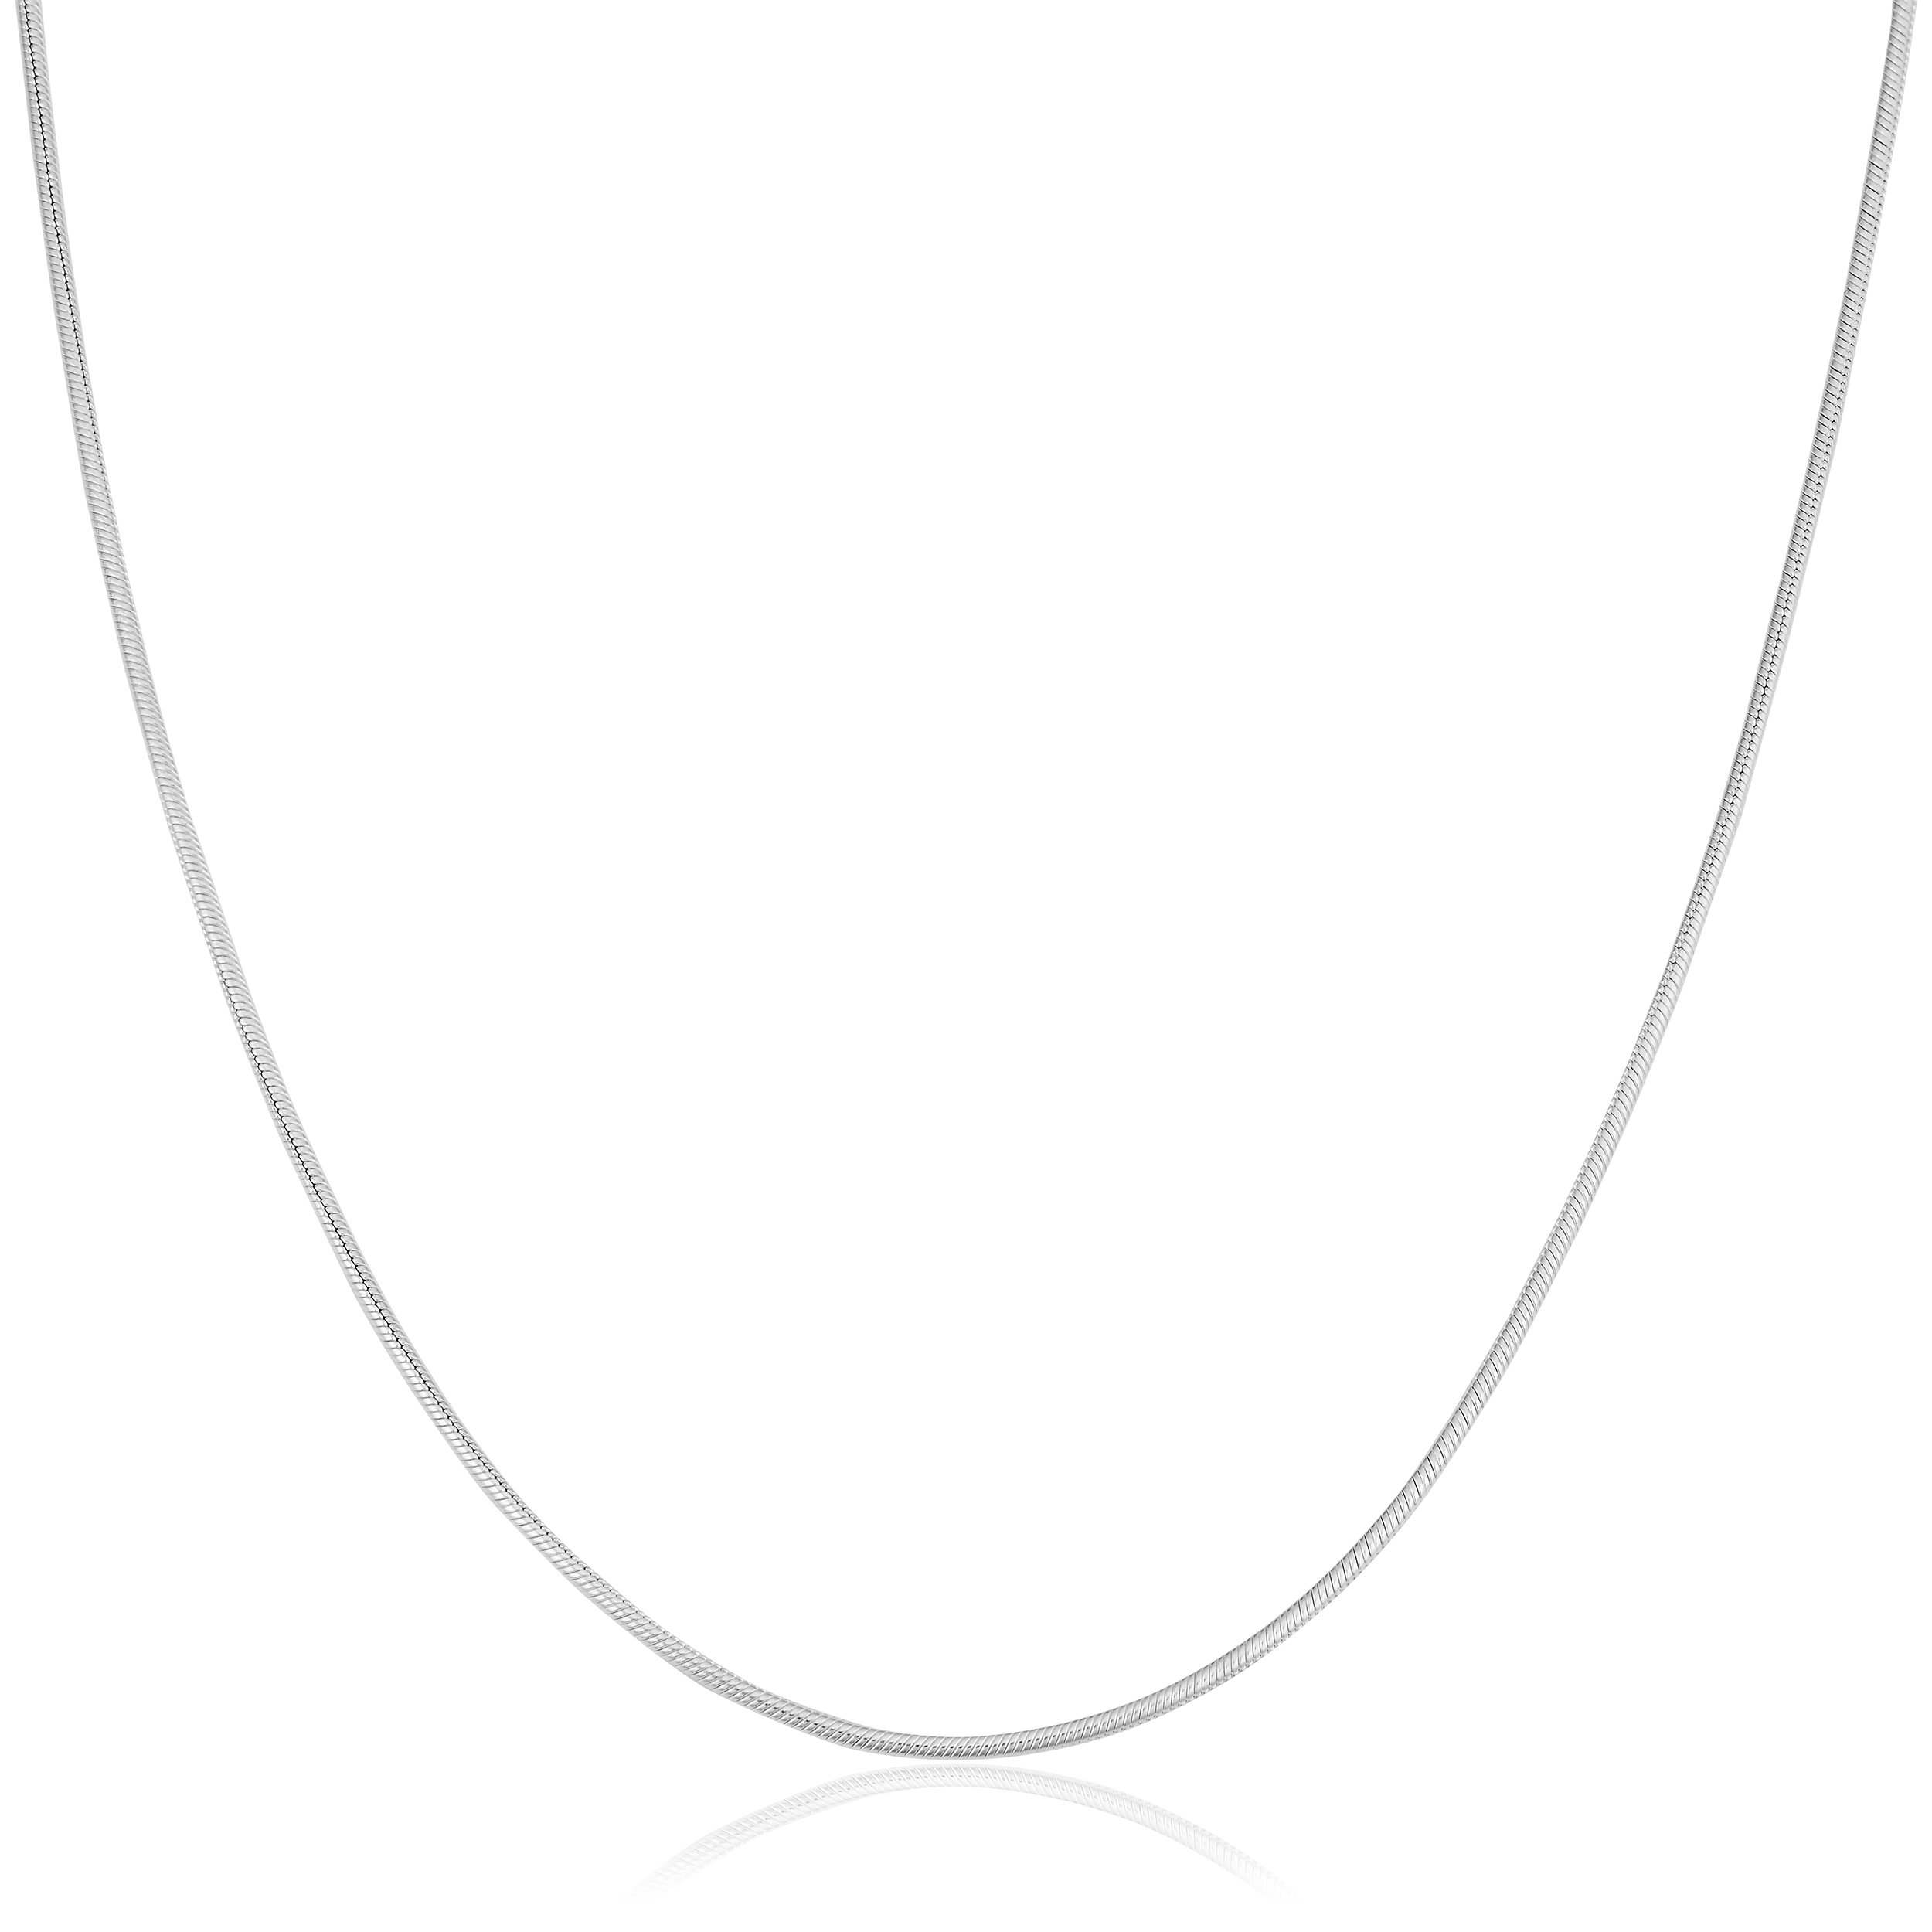 Kooljewelry Sterling Silver 1.2 mm Round Snake Chain Necklace (16, 18, 20, 22, 24, 30 or 36 inch)